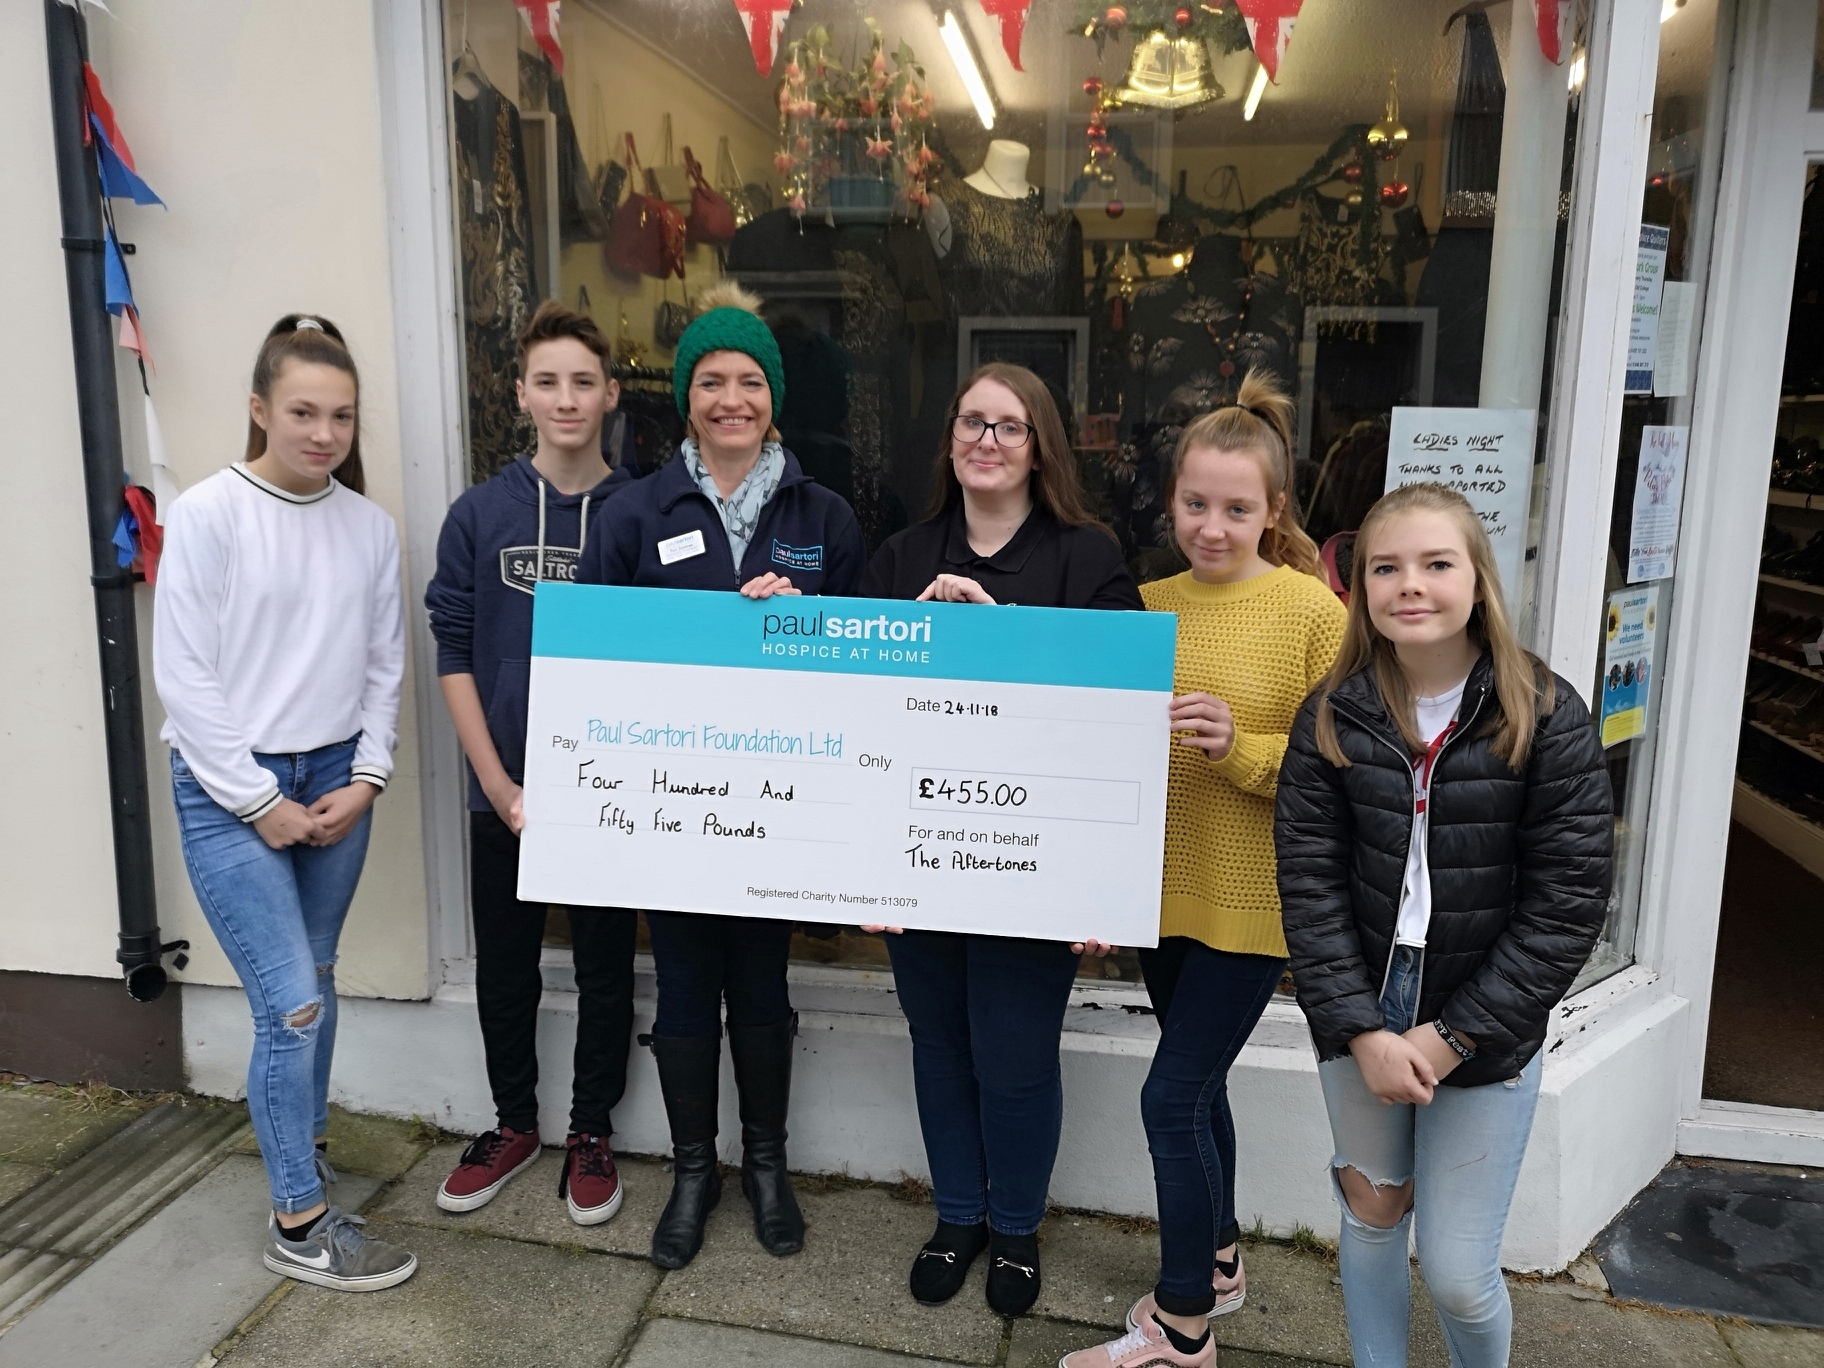 Serena Williams-Jones, James Elliot, Toni Dorkings, Helen Boyce, Gabrielle Power and Cara Regan. The youngsters pictured are Duke of Edinburgh students that volunteer every Saturday in Paul Sartori stores, Neyland.